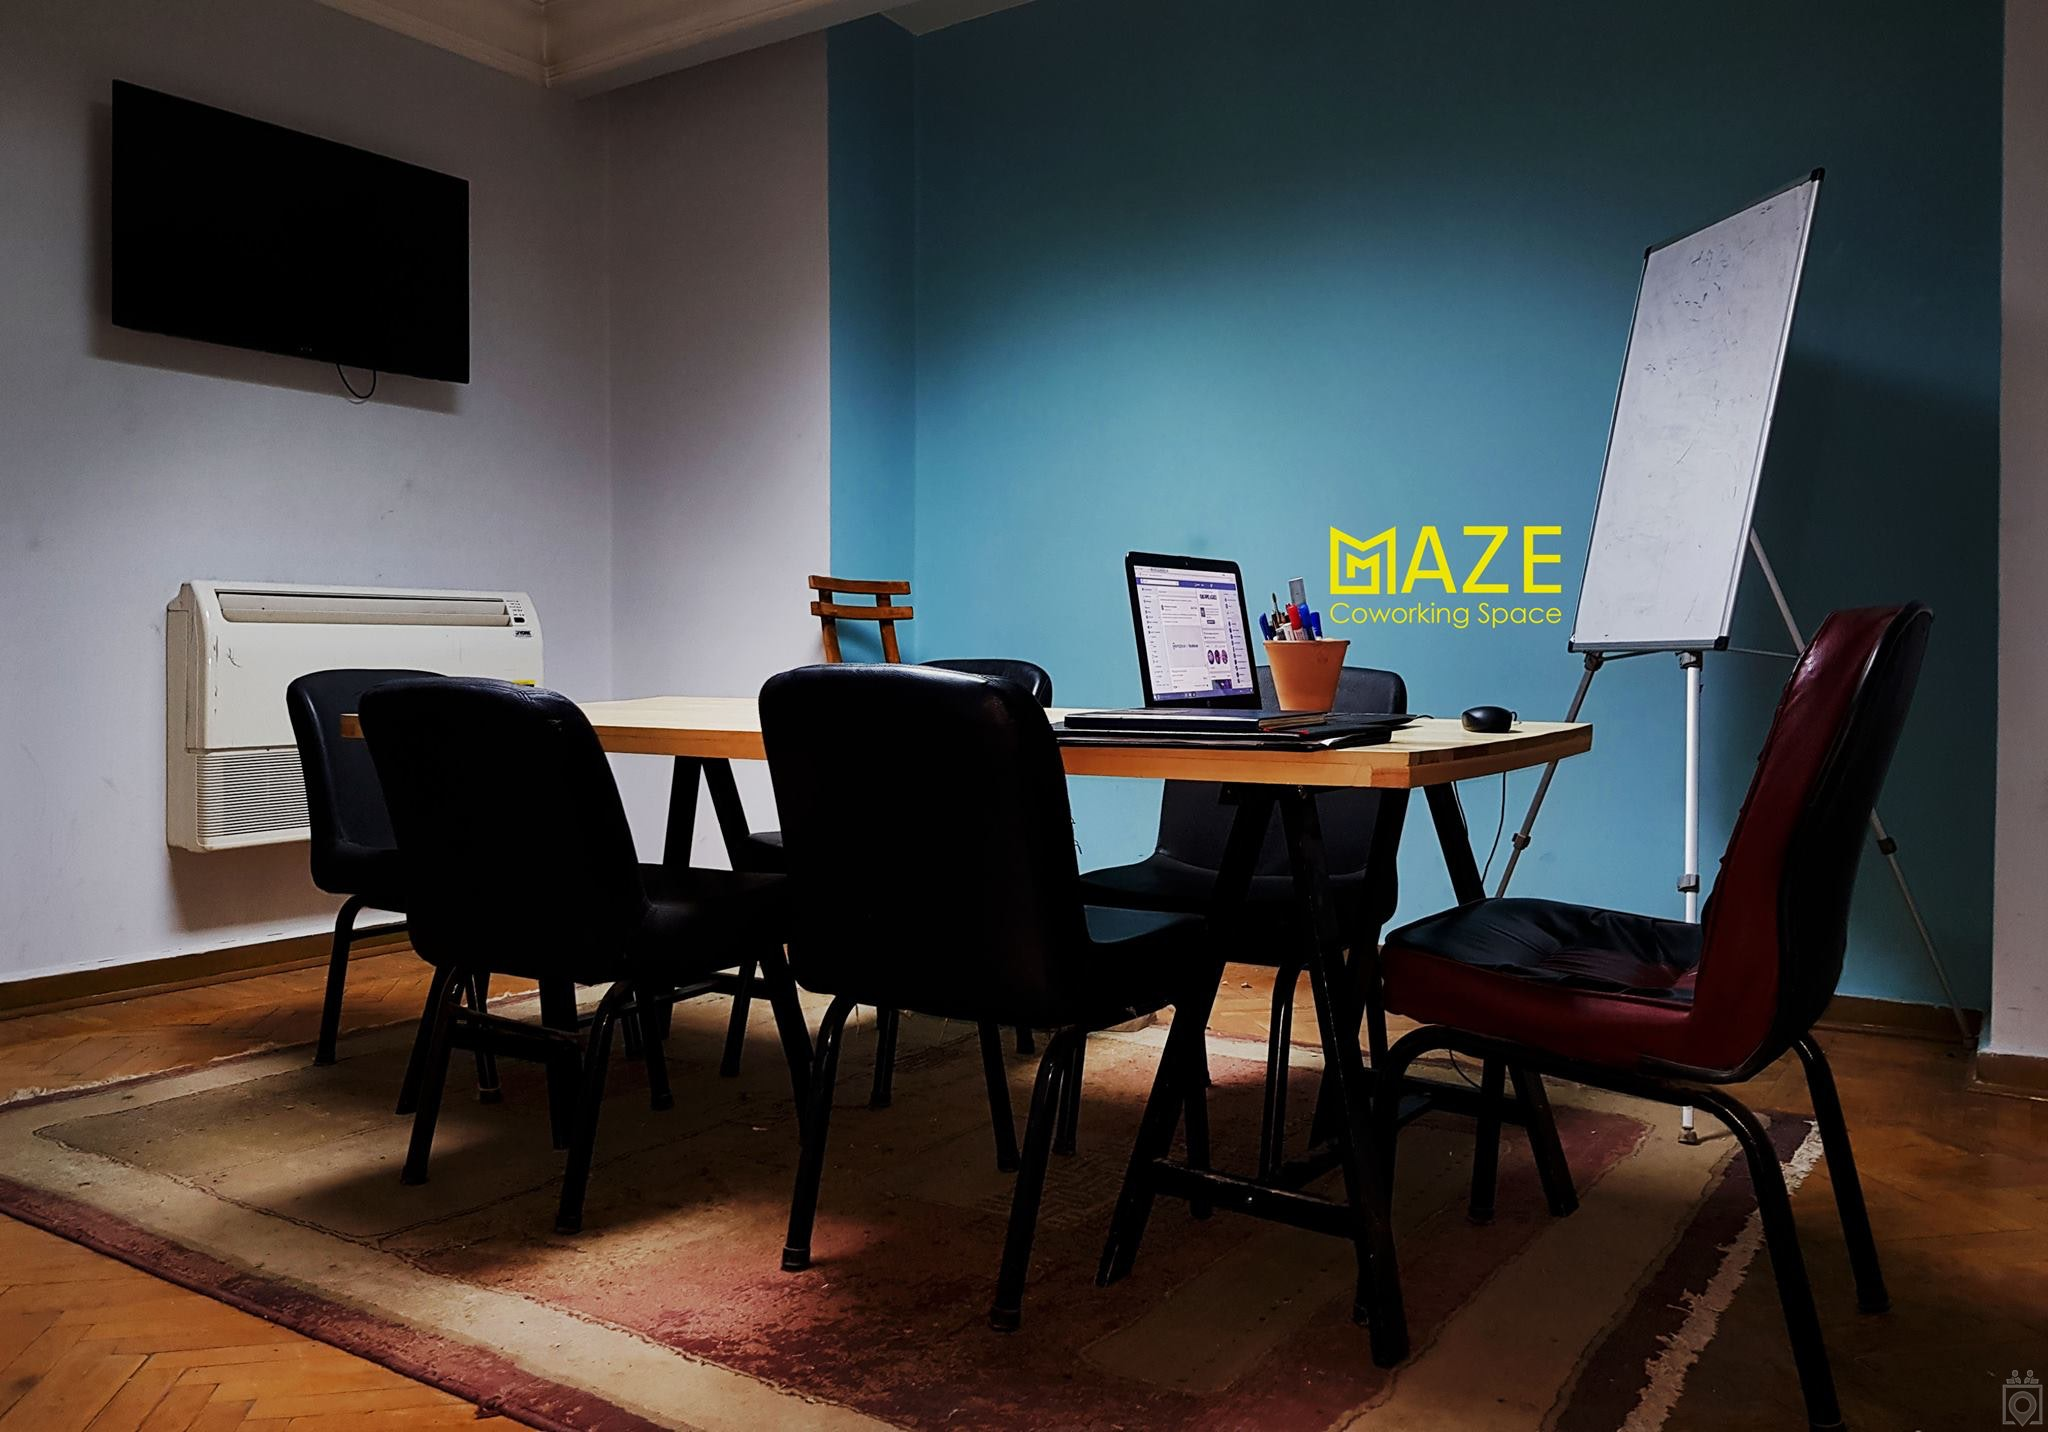 Maze Coworking Space Giza Read Reviews Online